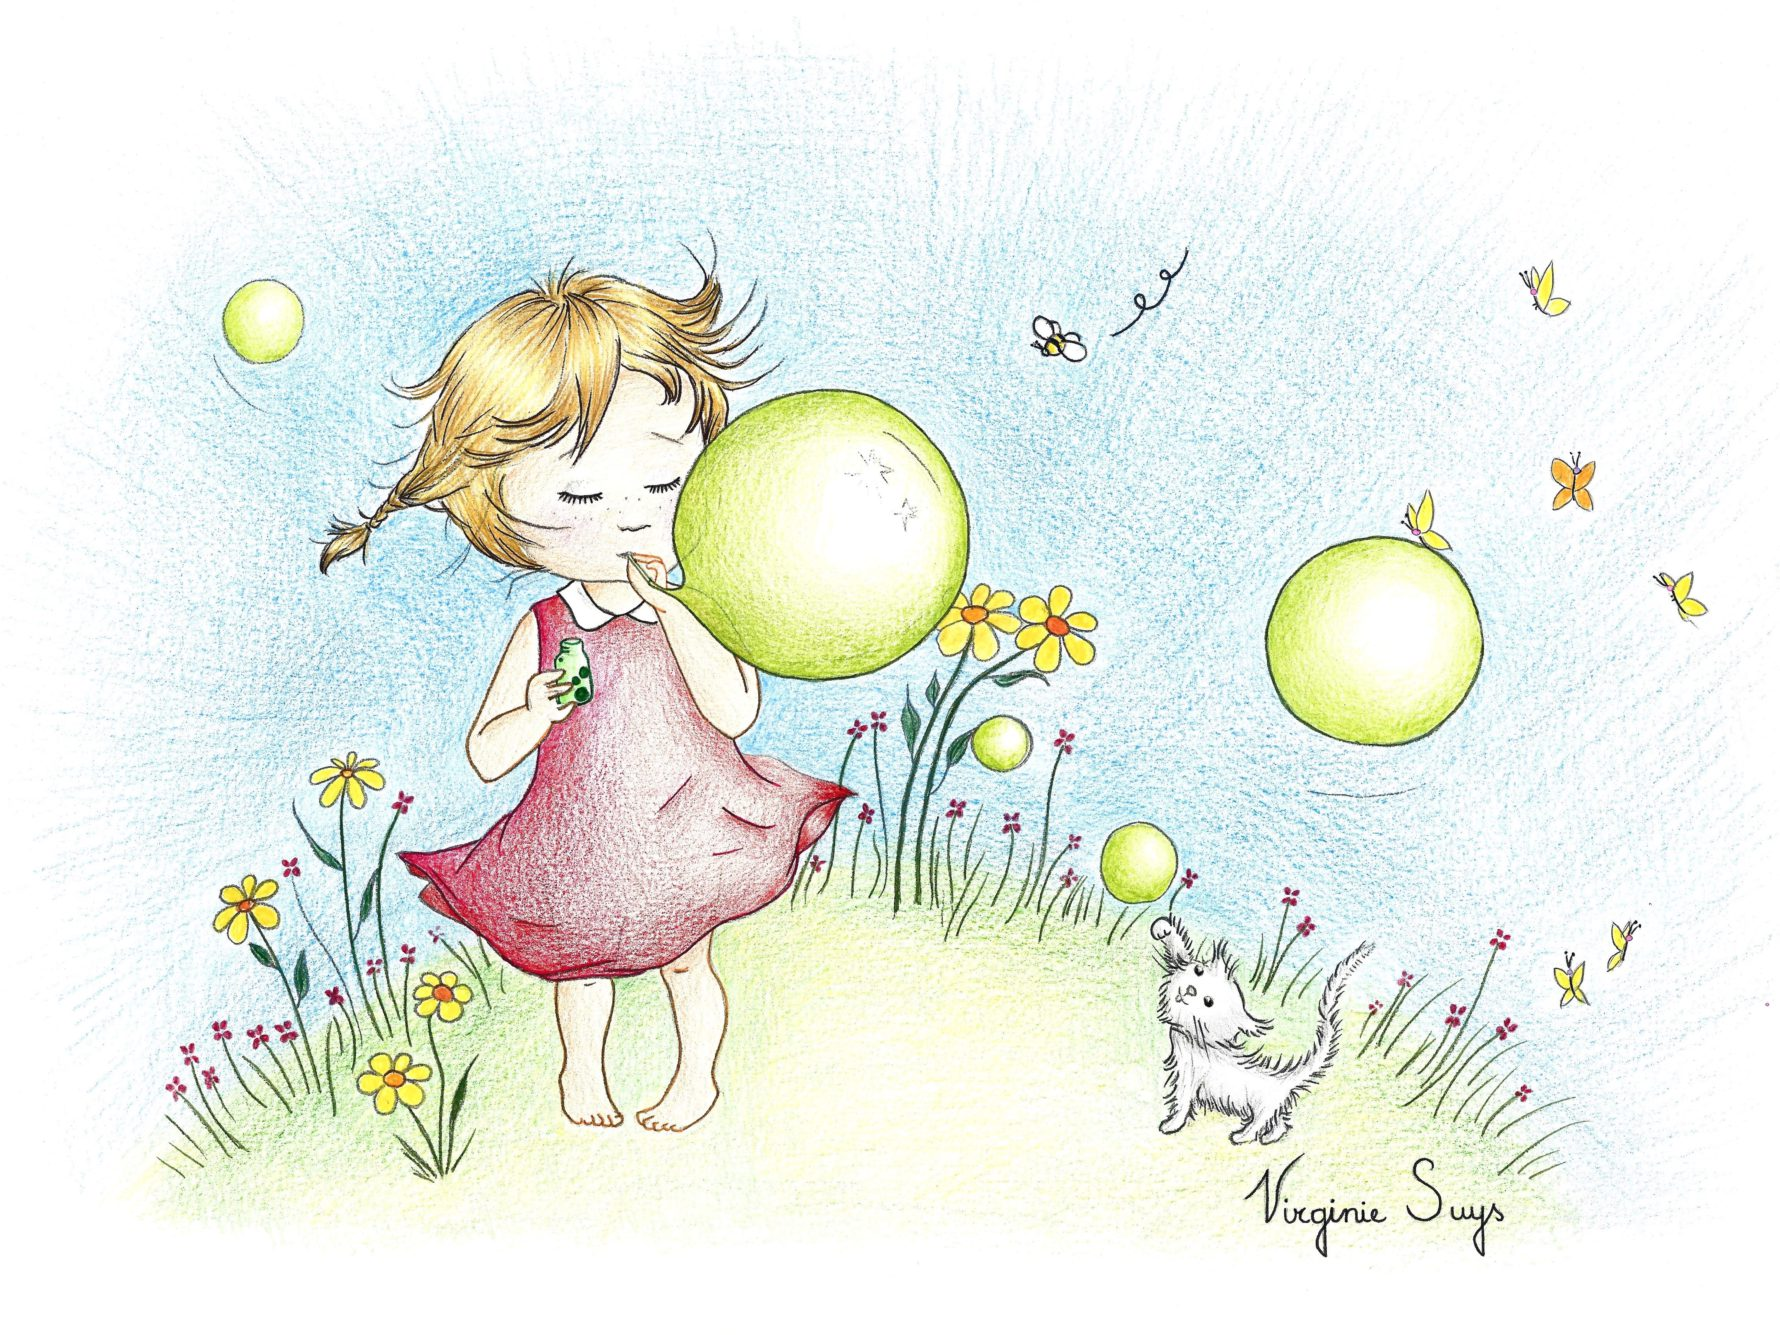 Virginie Suys Bubbly girl in red-green illustration